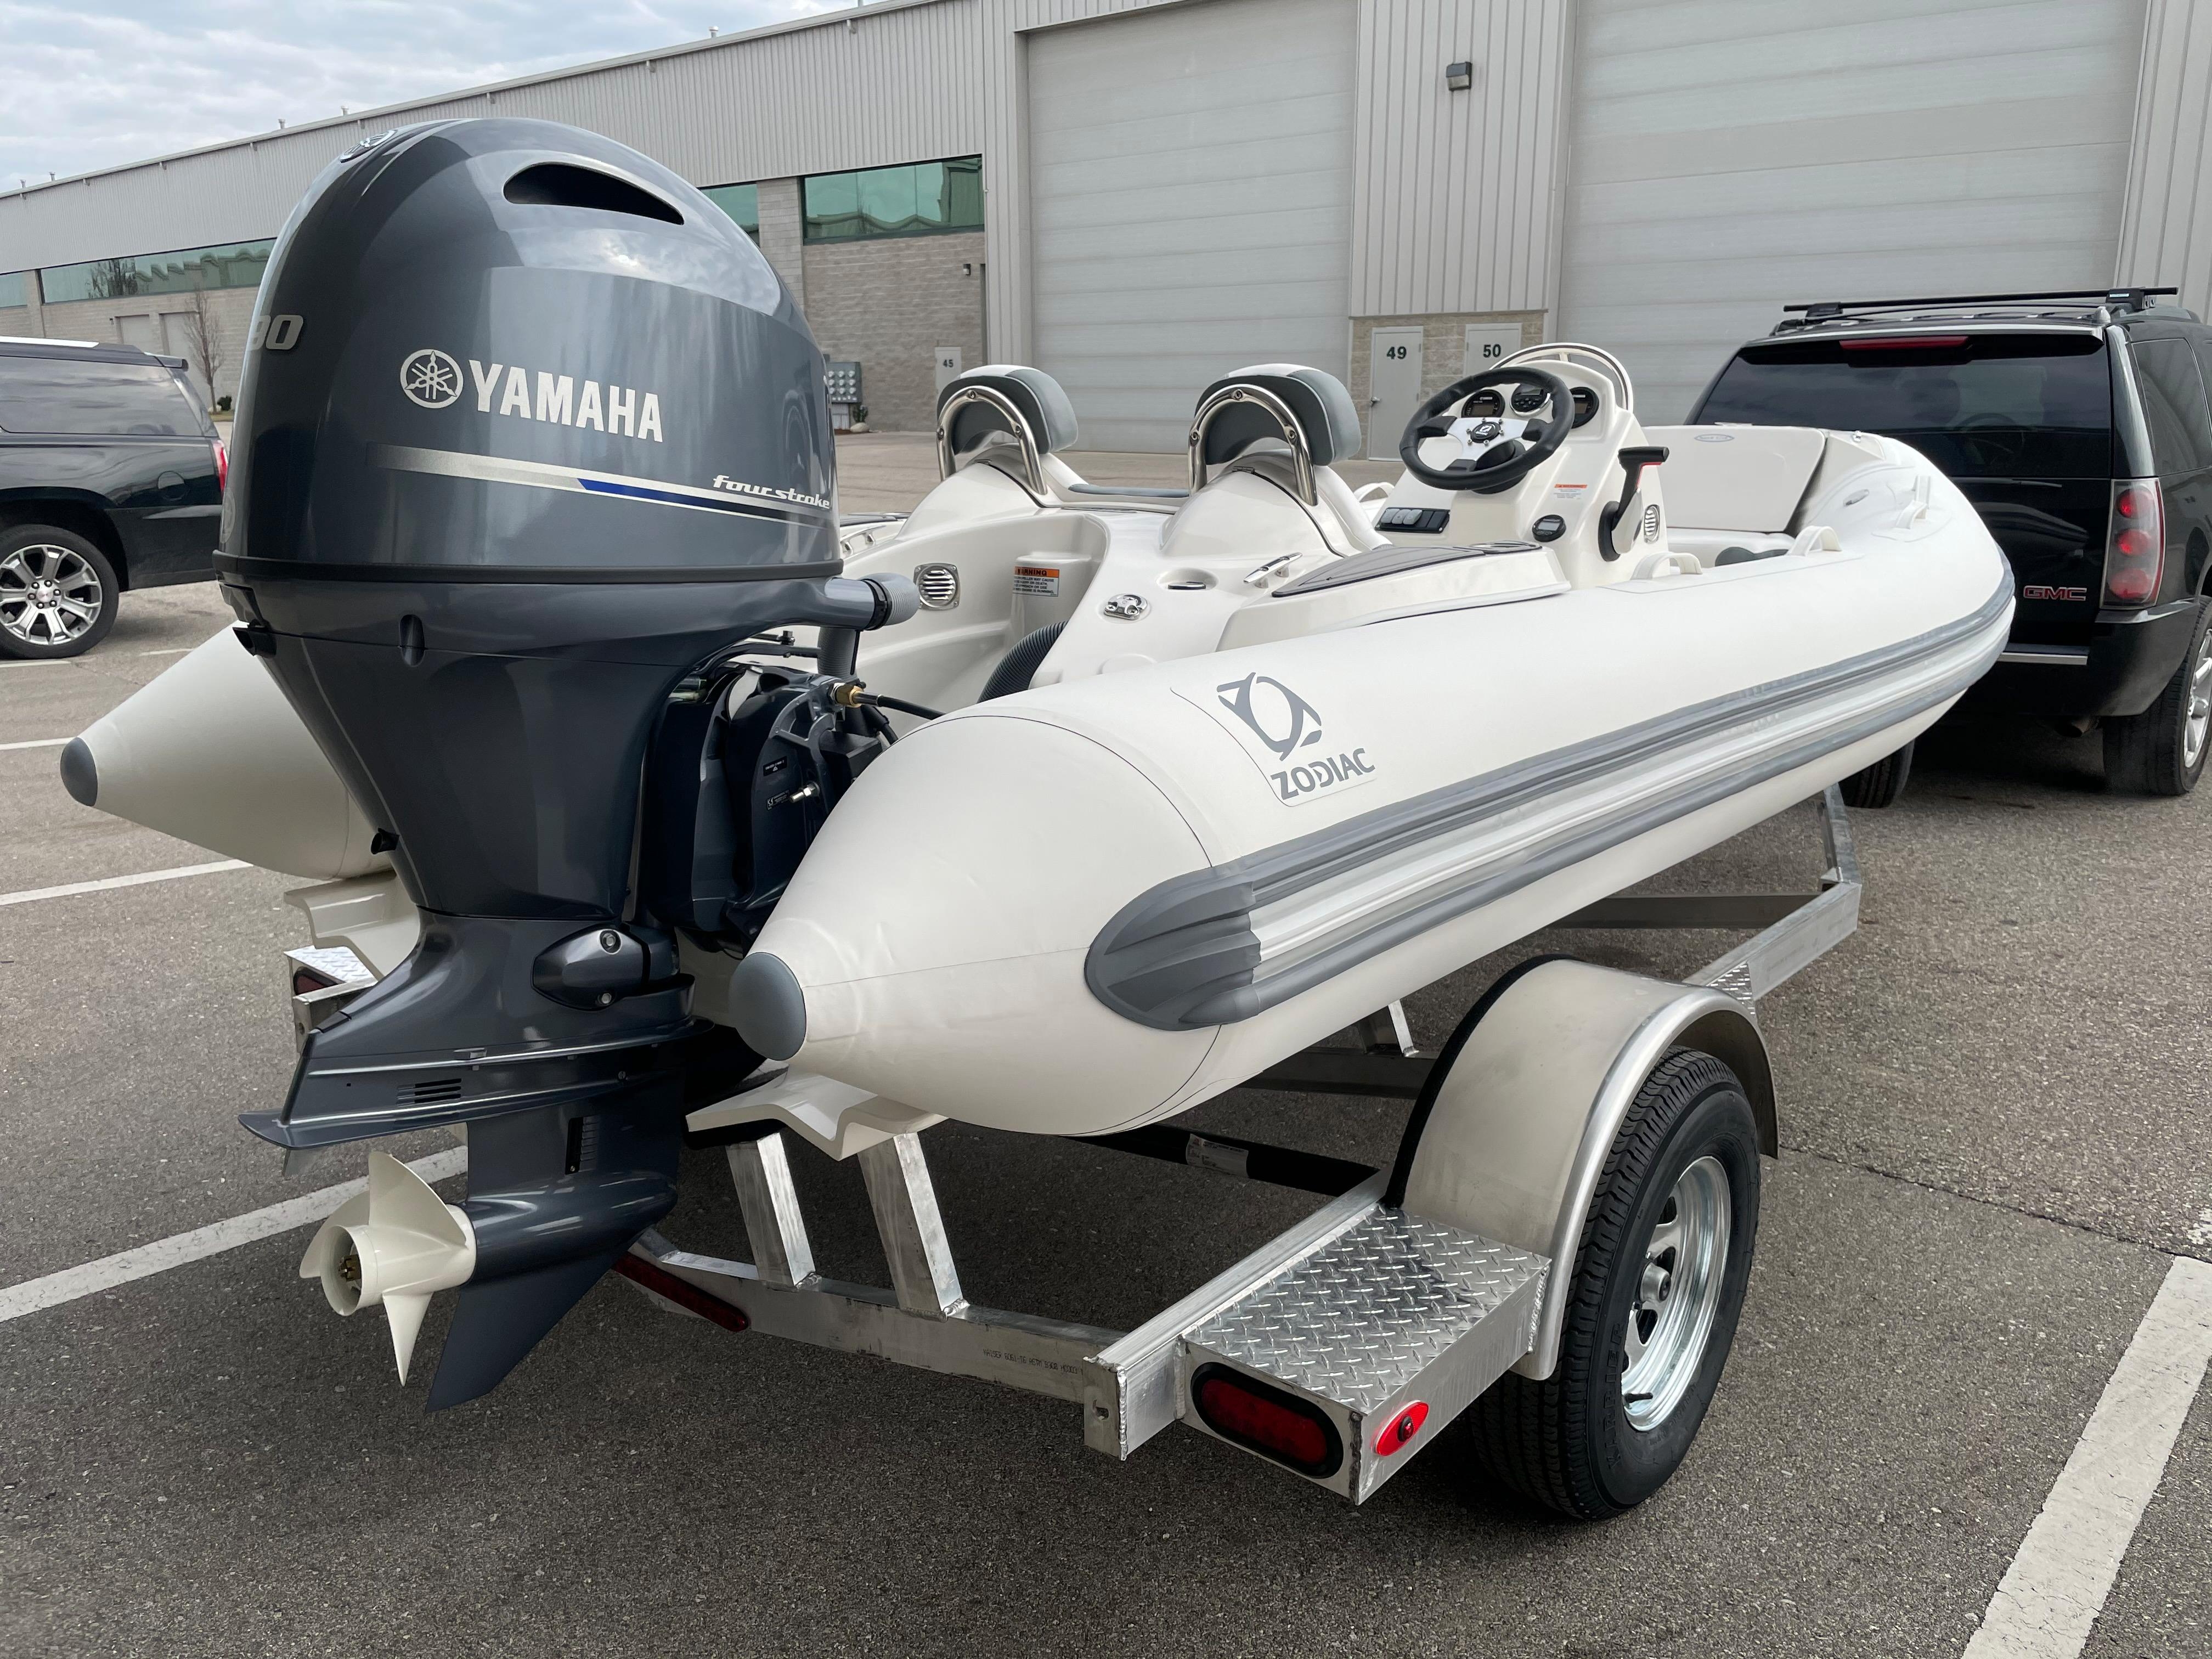 2022 Zodiac Yachtline 490 Deluxe NEO GL Edition 90hp On Order, Image 4